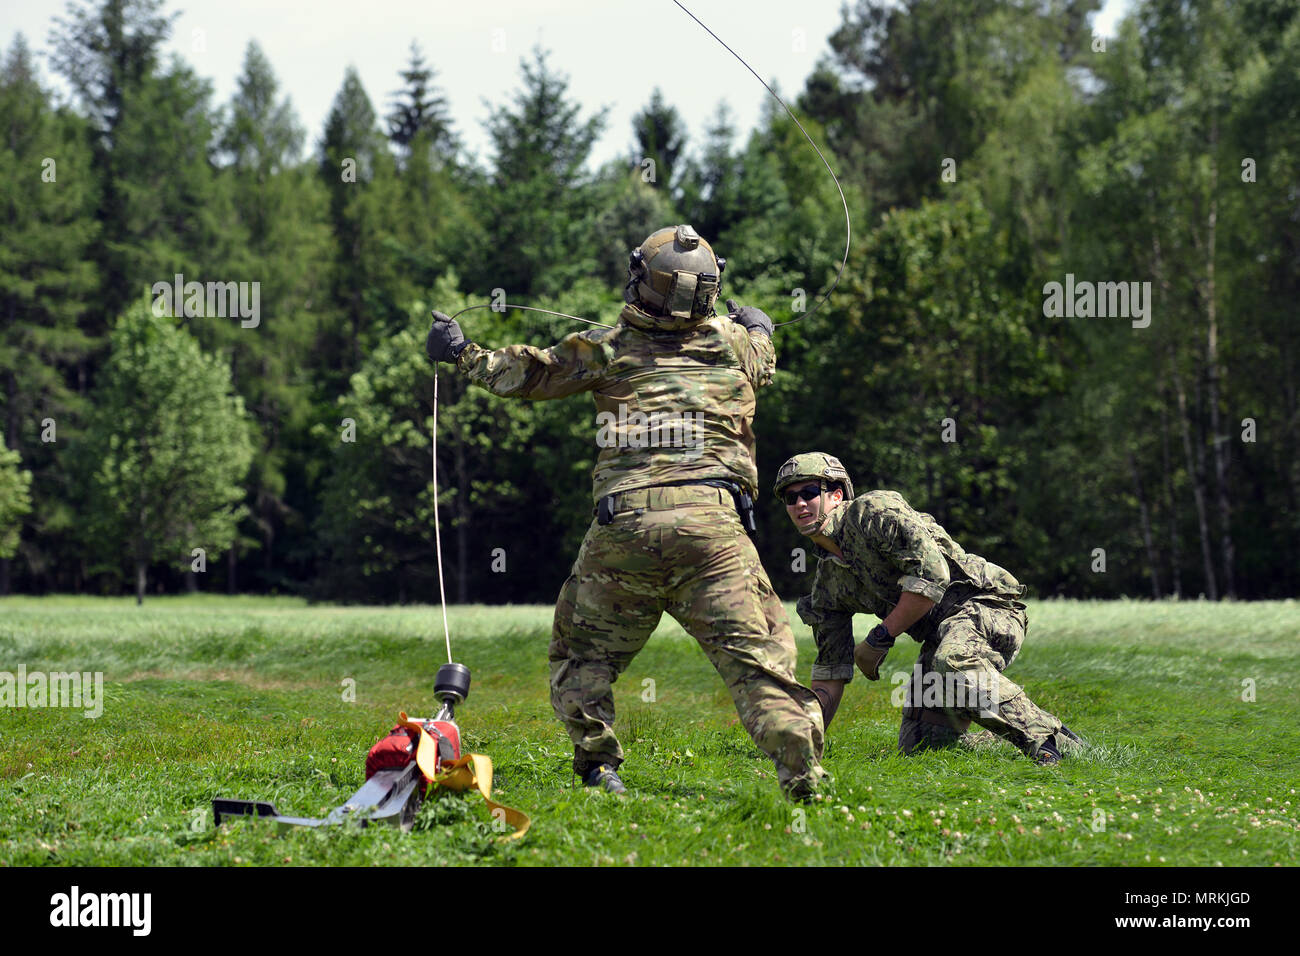 A U S Navy Seal Stock Photos & A U S Navy Seal Stock Images